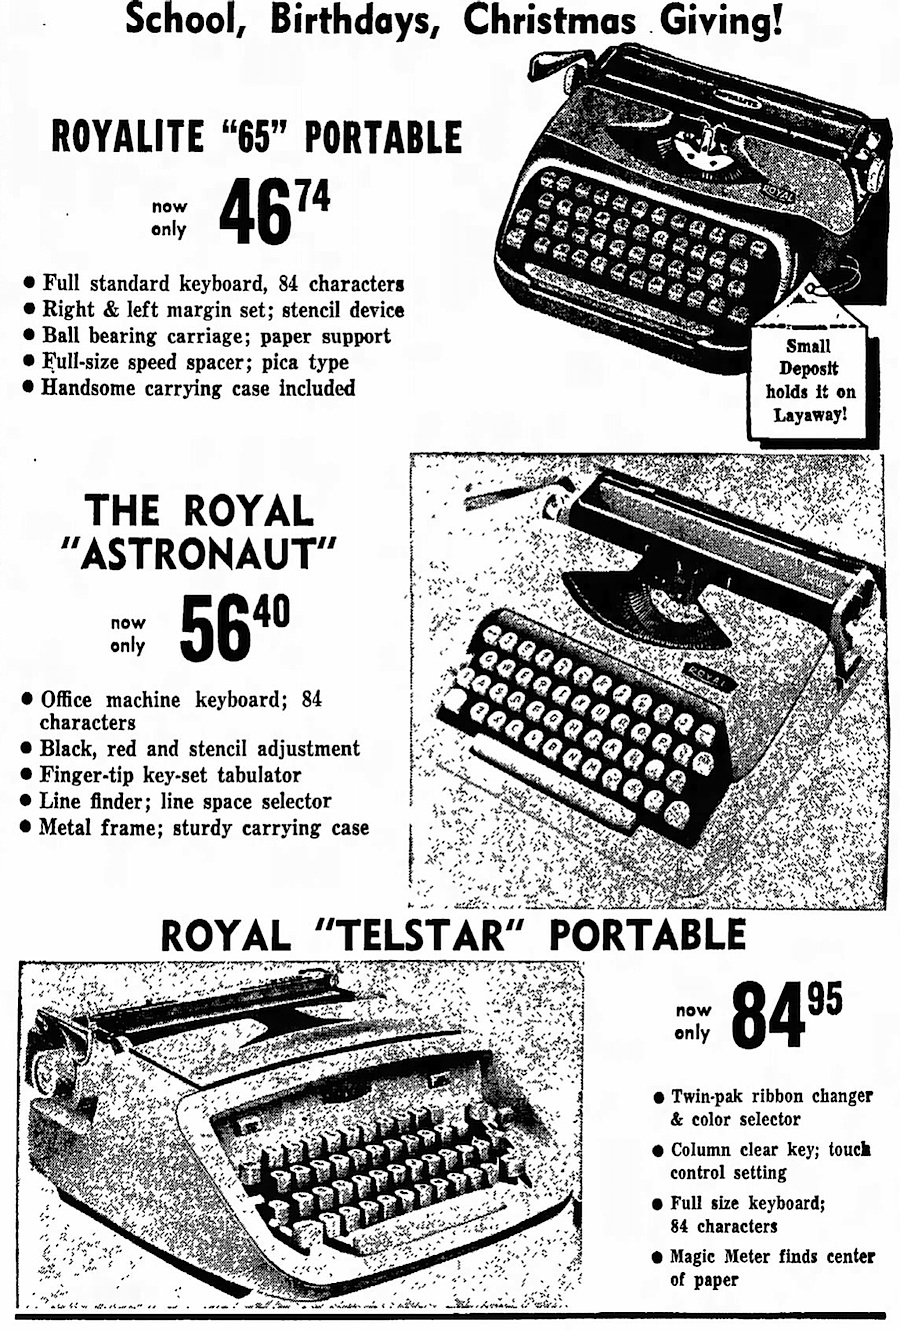 Troutman's ad - The Daily Courier - Connellsville, Pennsylvania - Sep 2, 1965